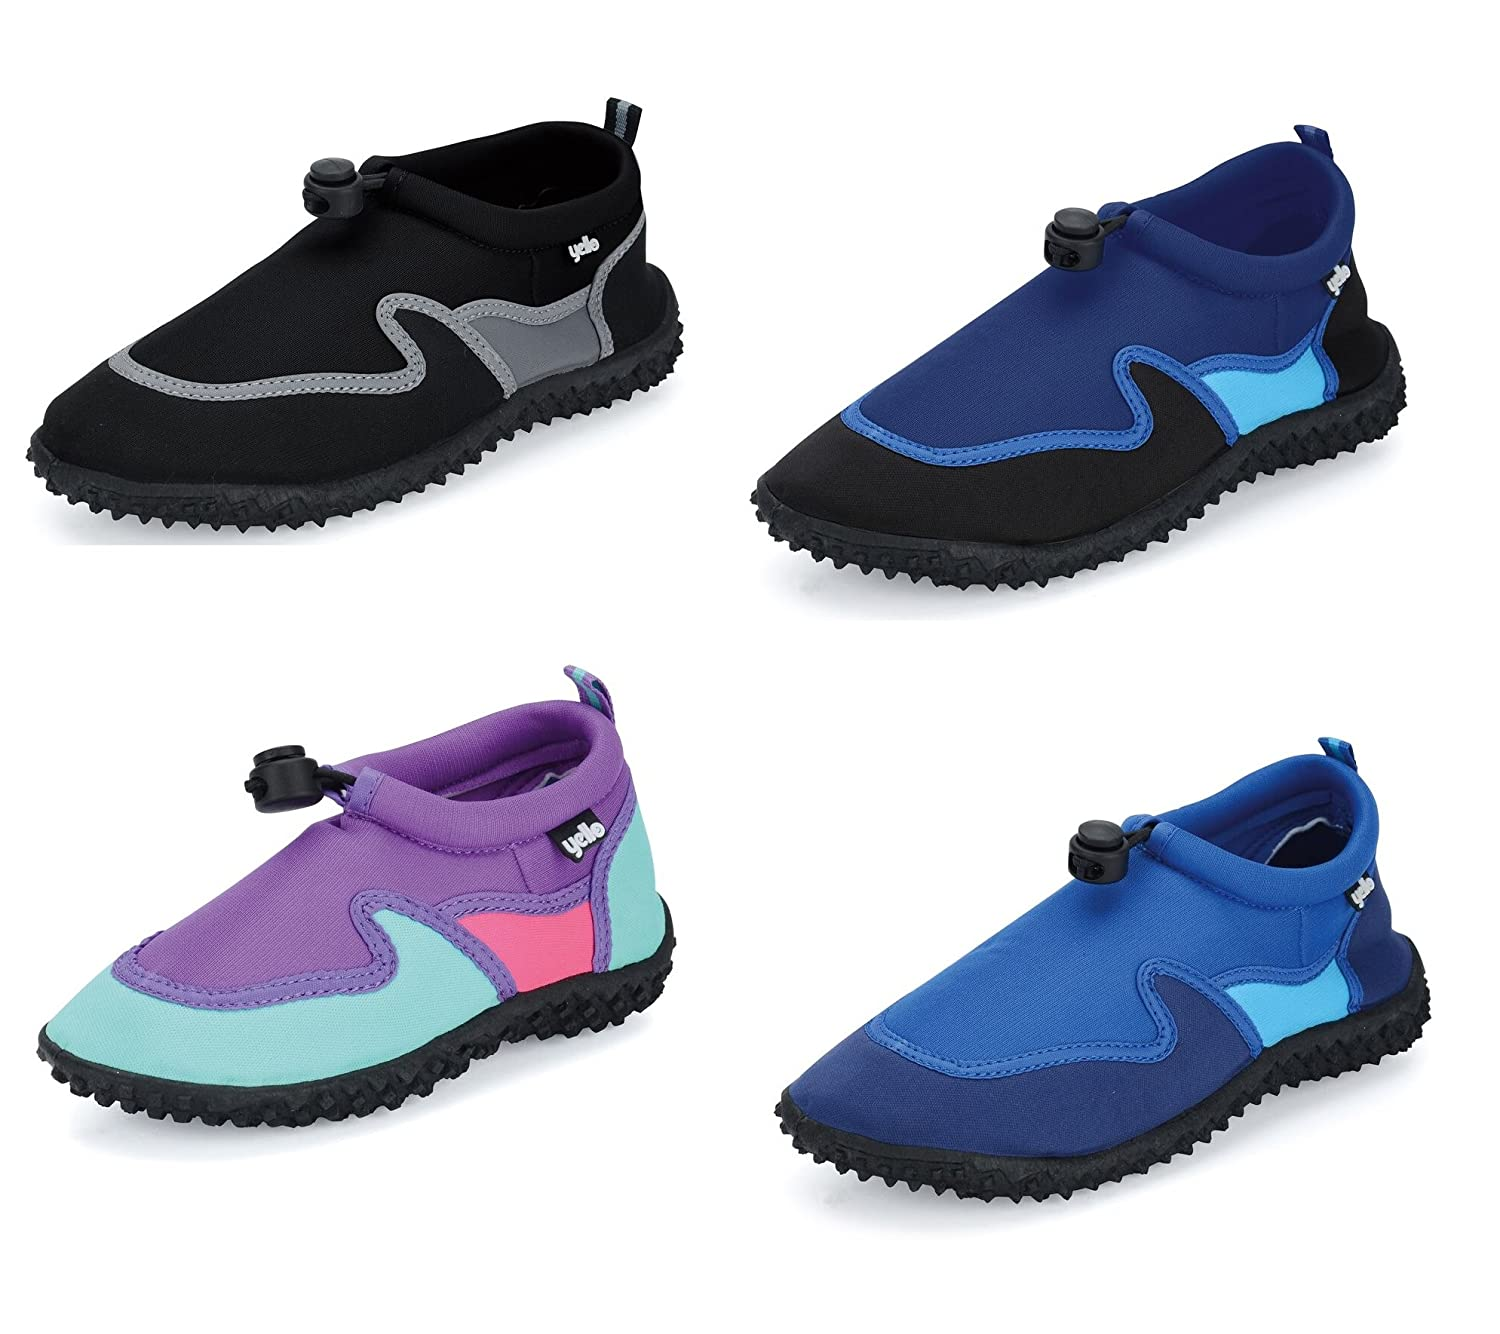 Yello Boys/Girls Infant Aqua Shoes, Beach Shoes, Wetsuit Shoes, Childs Shoes Choice of Colour FW919